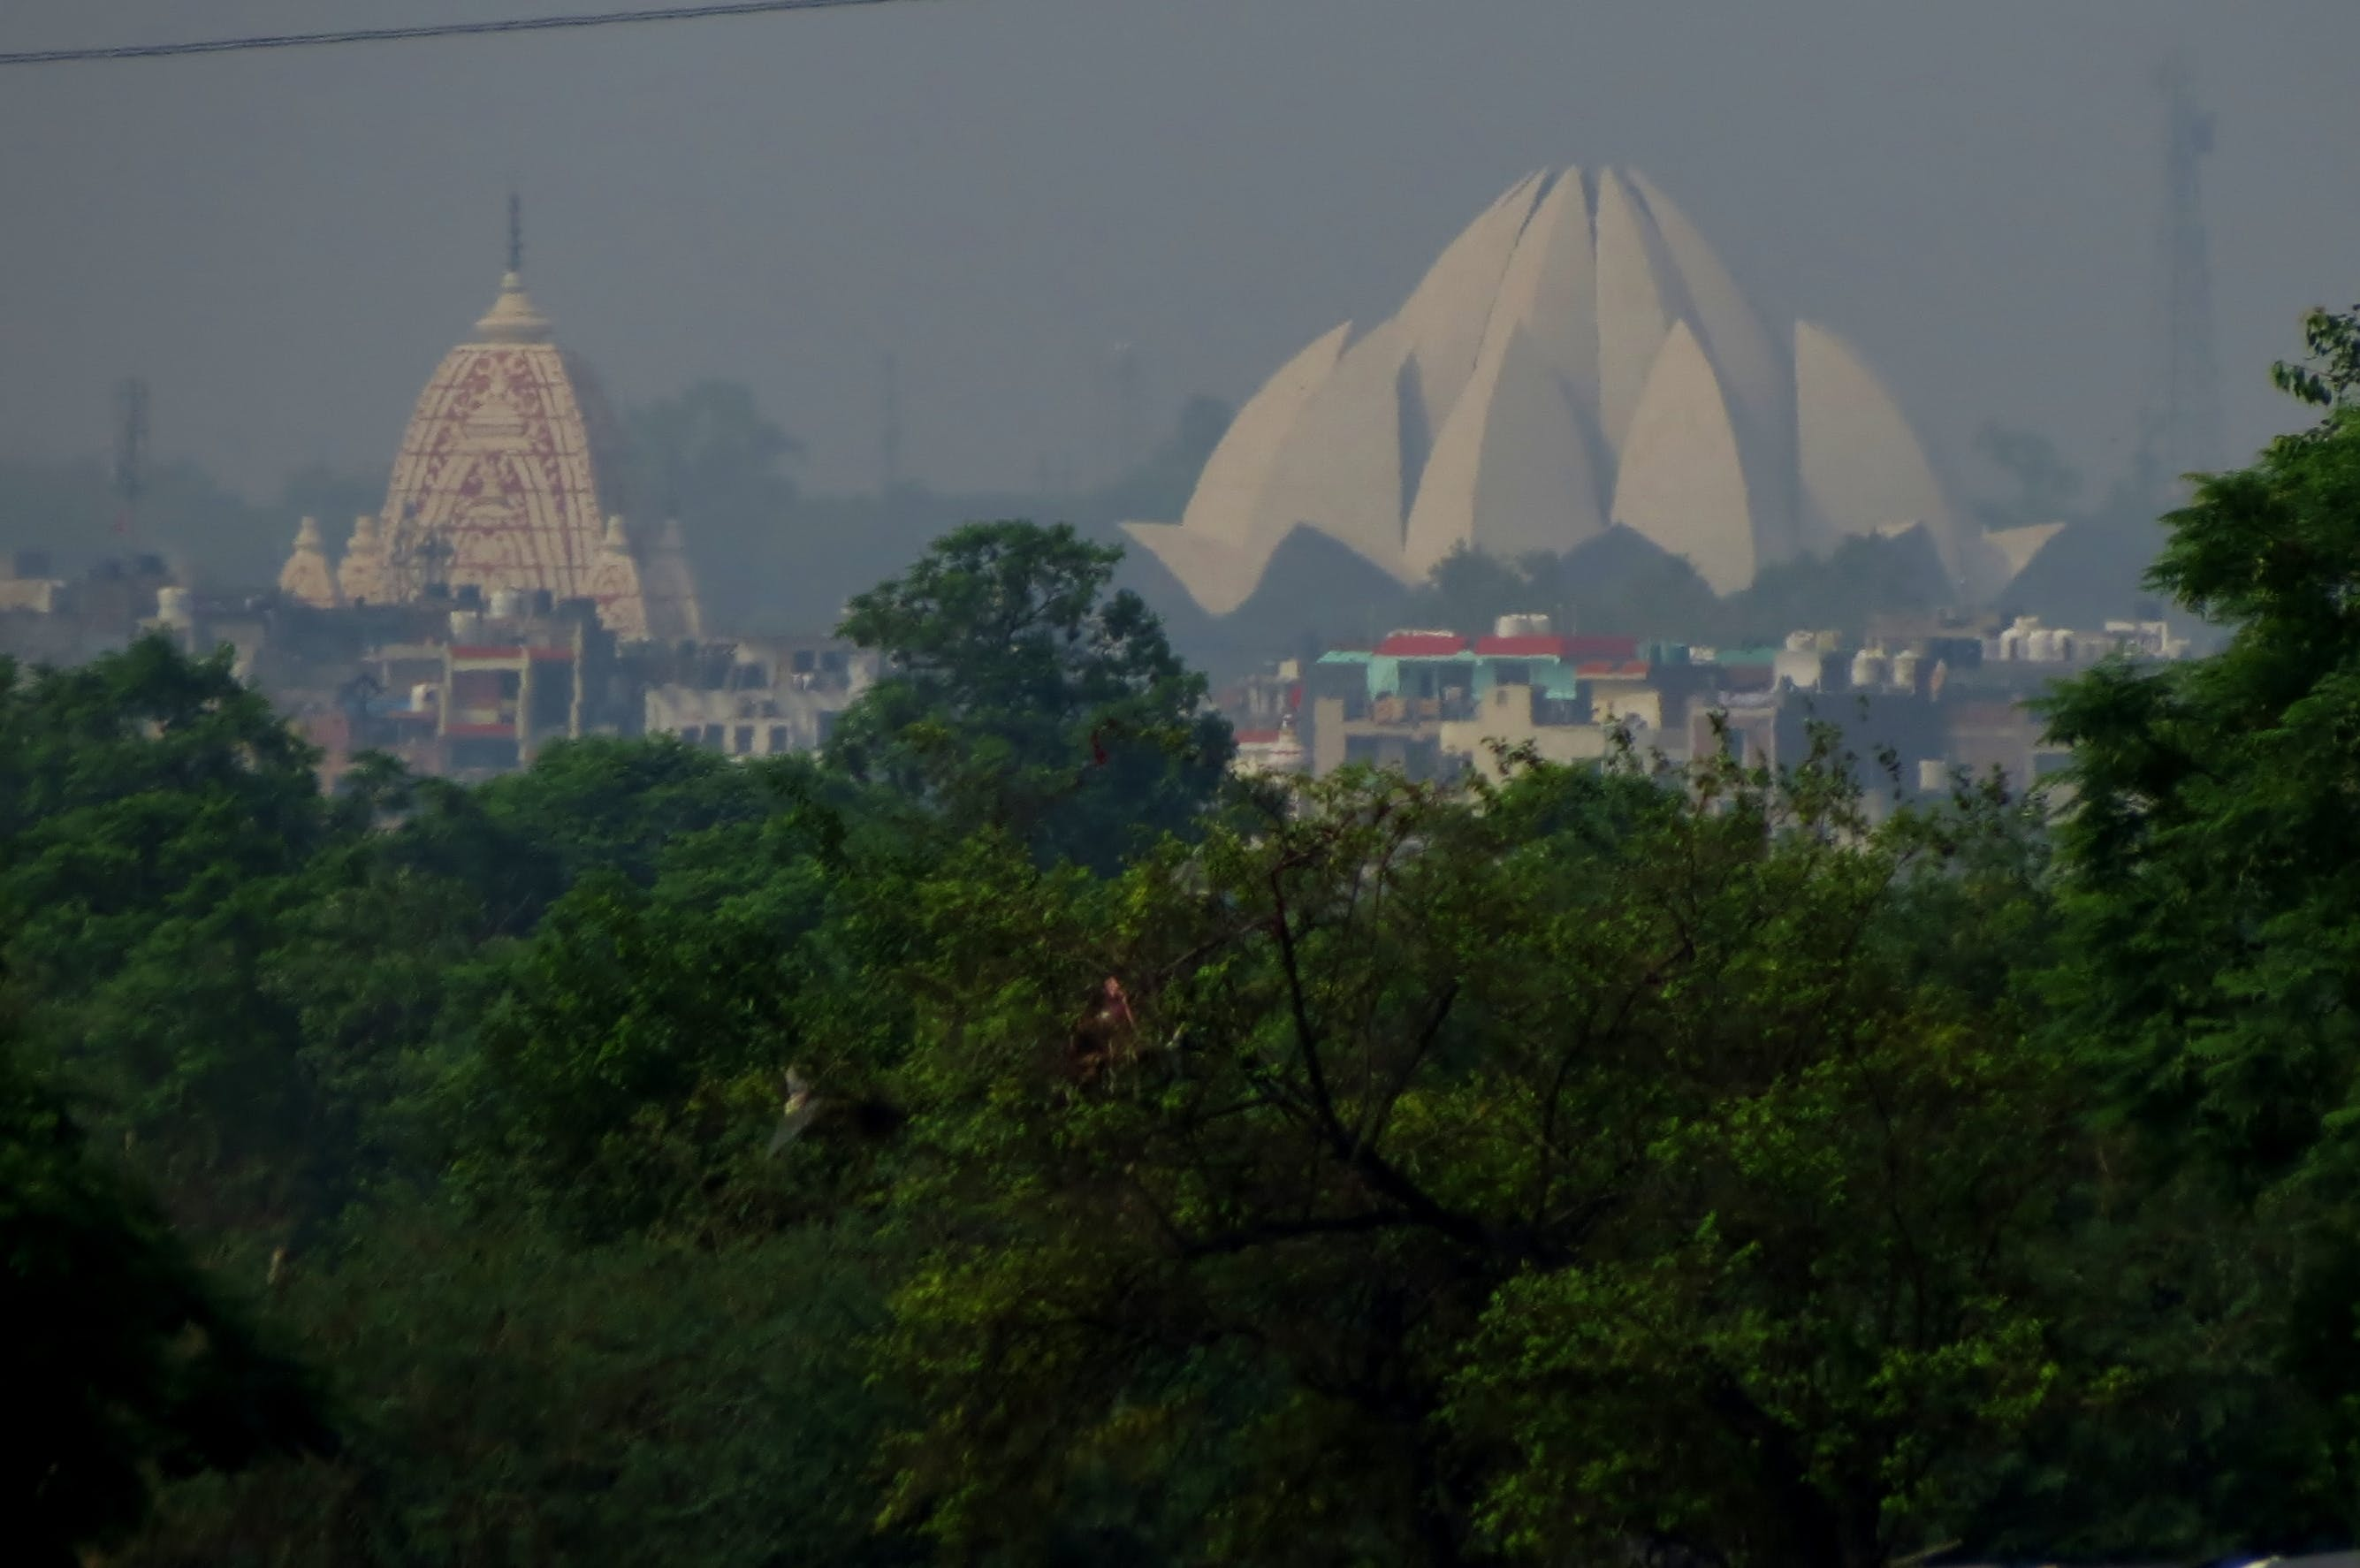 Free stock photo of bhai temple, lotus temple